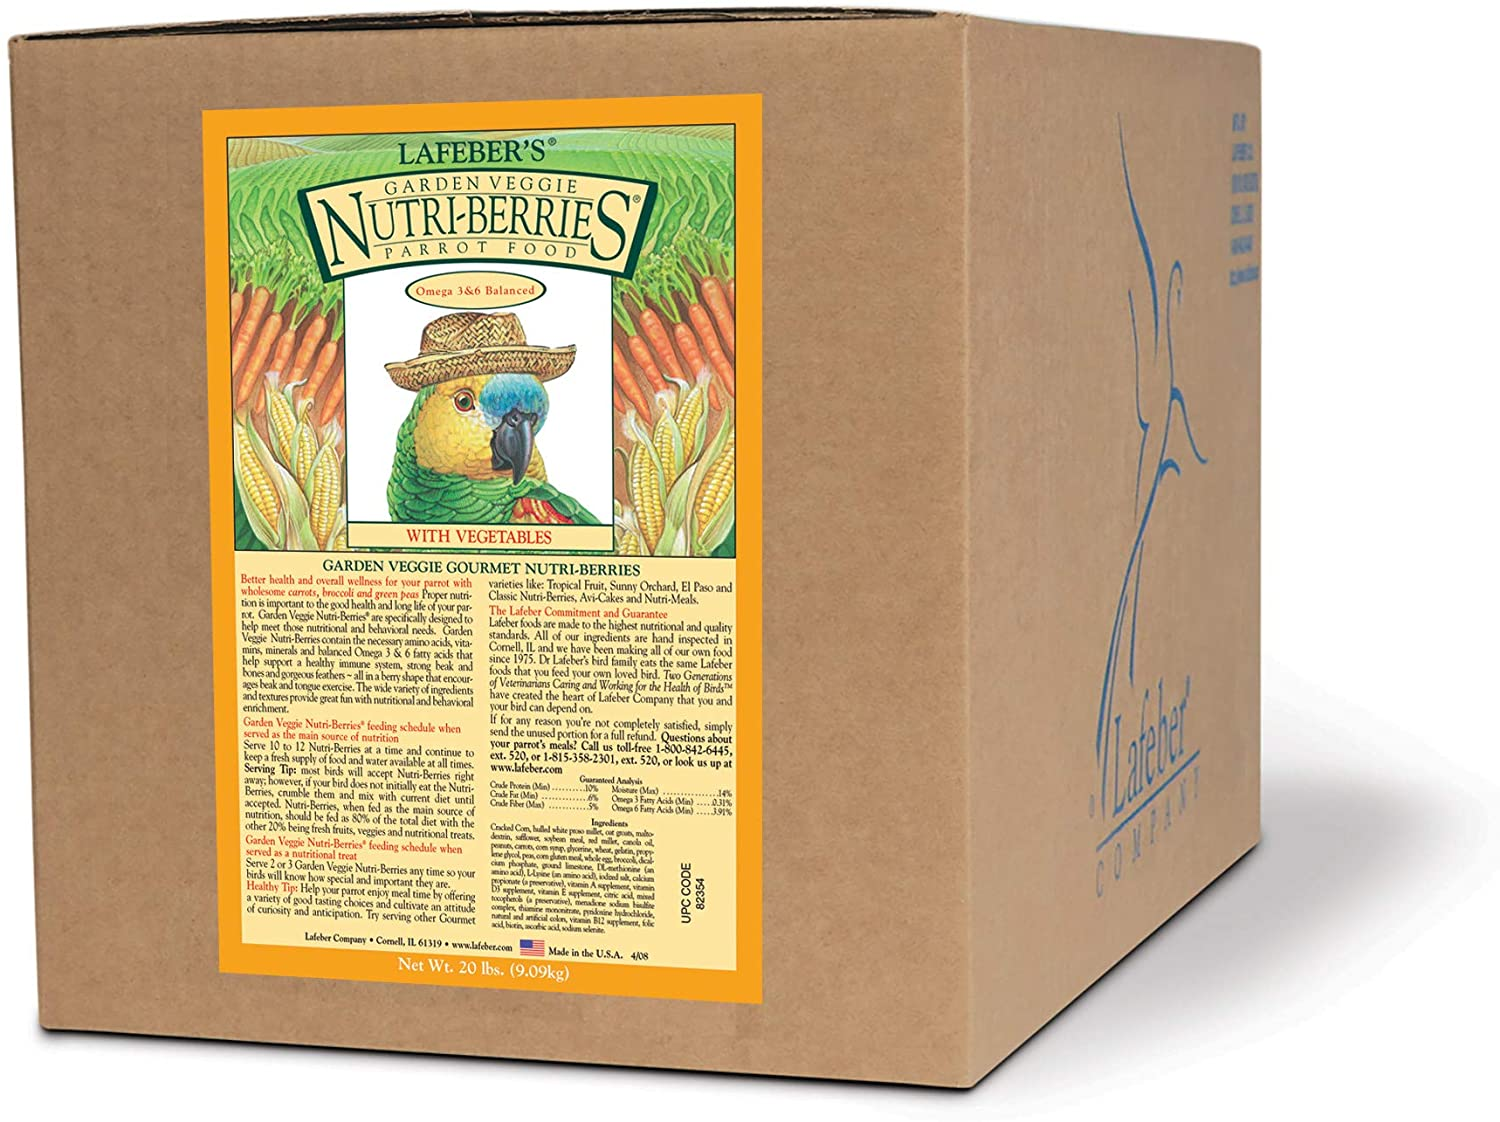 LAFEBER'S Garden Veggie Nutri-Berries Pet Bird Food, Made with Non-GMO and Human-Grade Ingredients, for Parrots